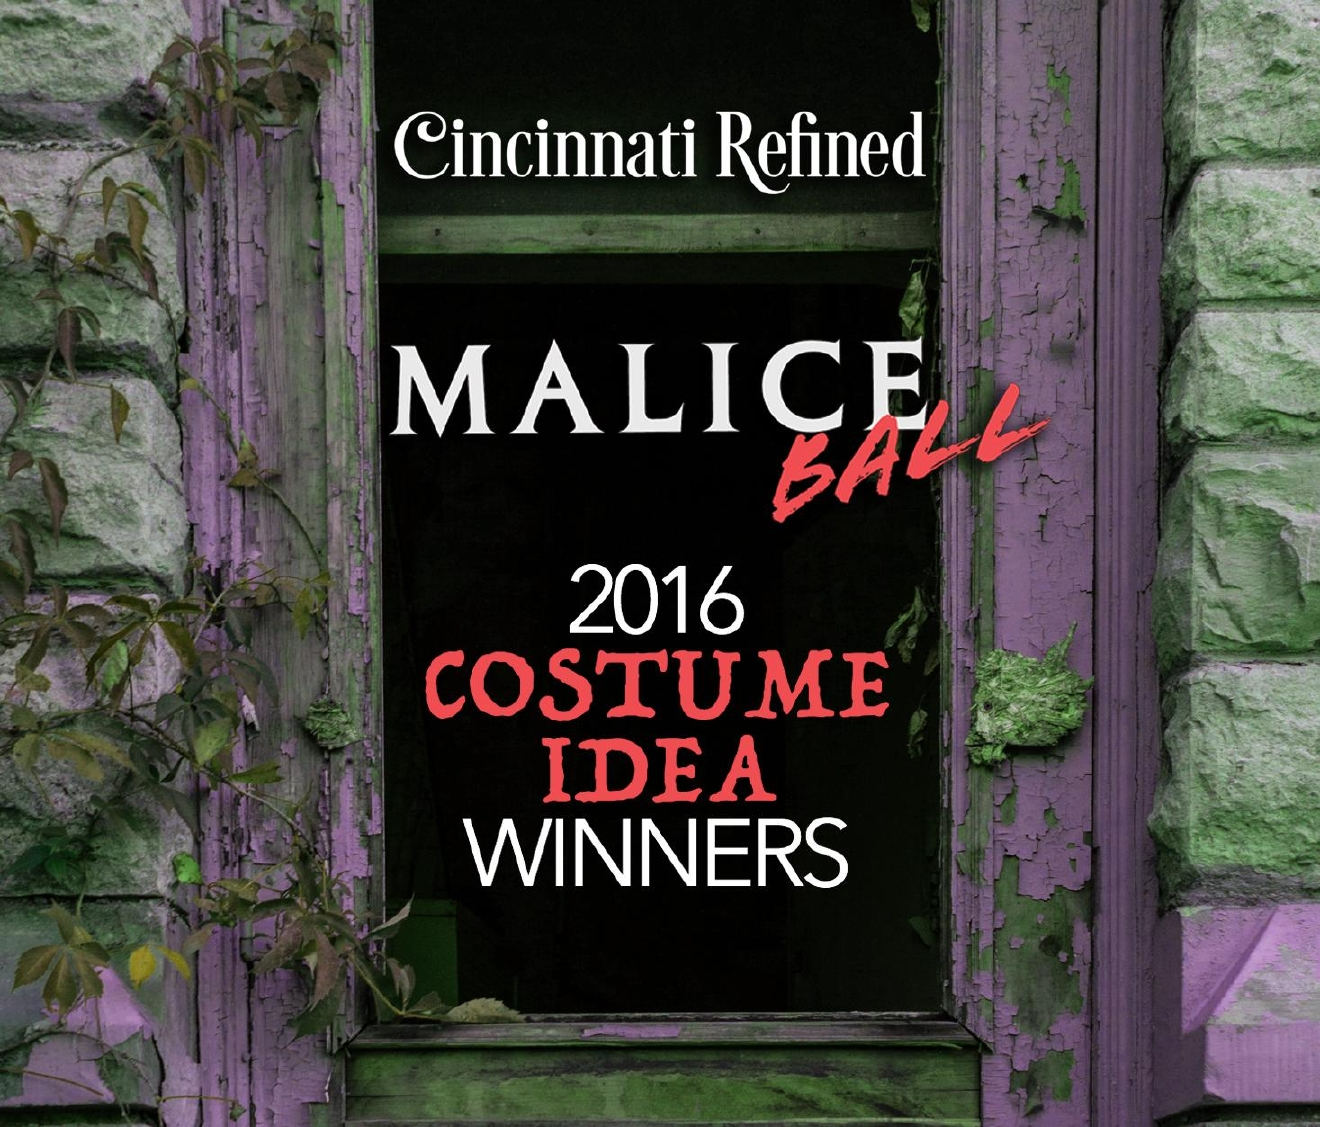 We asked and you delivered! Here's the winning submitted list that won two free tickets to the OTR Chamber's 2016 Malice Ball. / Image: Phil Armstrong, Cincinnati Refined / Published: 10.26.16